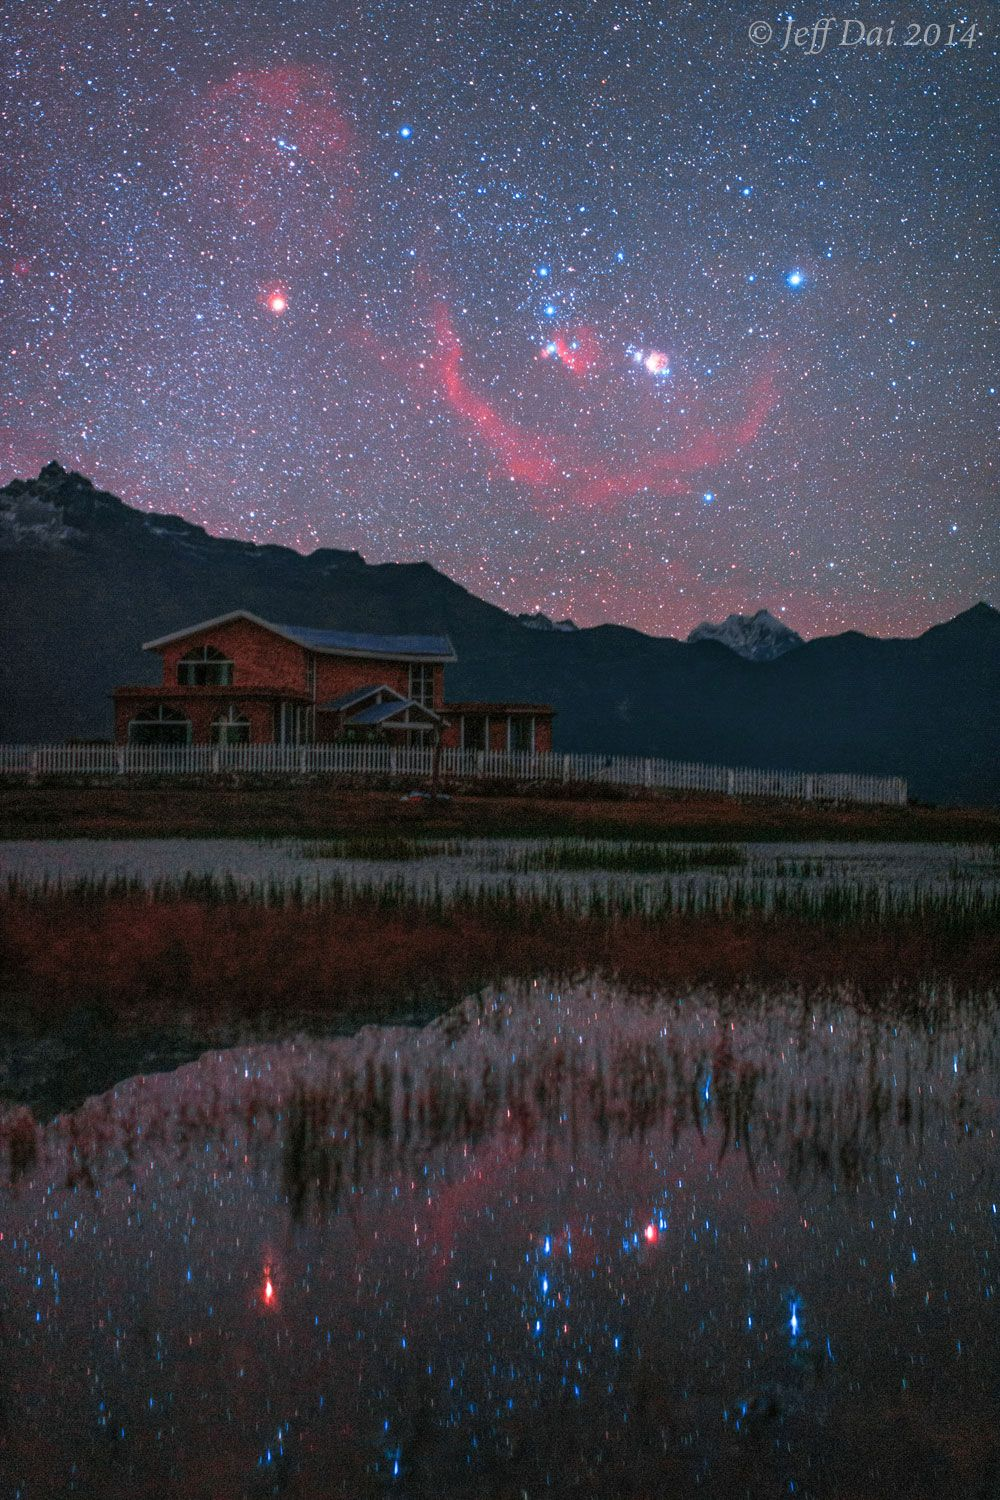 The famous constellation of Orion appears both above -- and reflected in -- a peaceful lake in the Gyirong Valley of Tibet, China. - Image Credit & Copyright: Jeff Dai